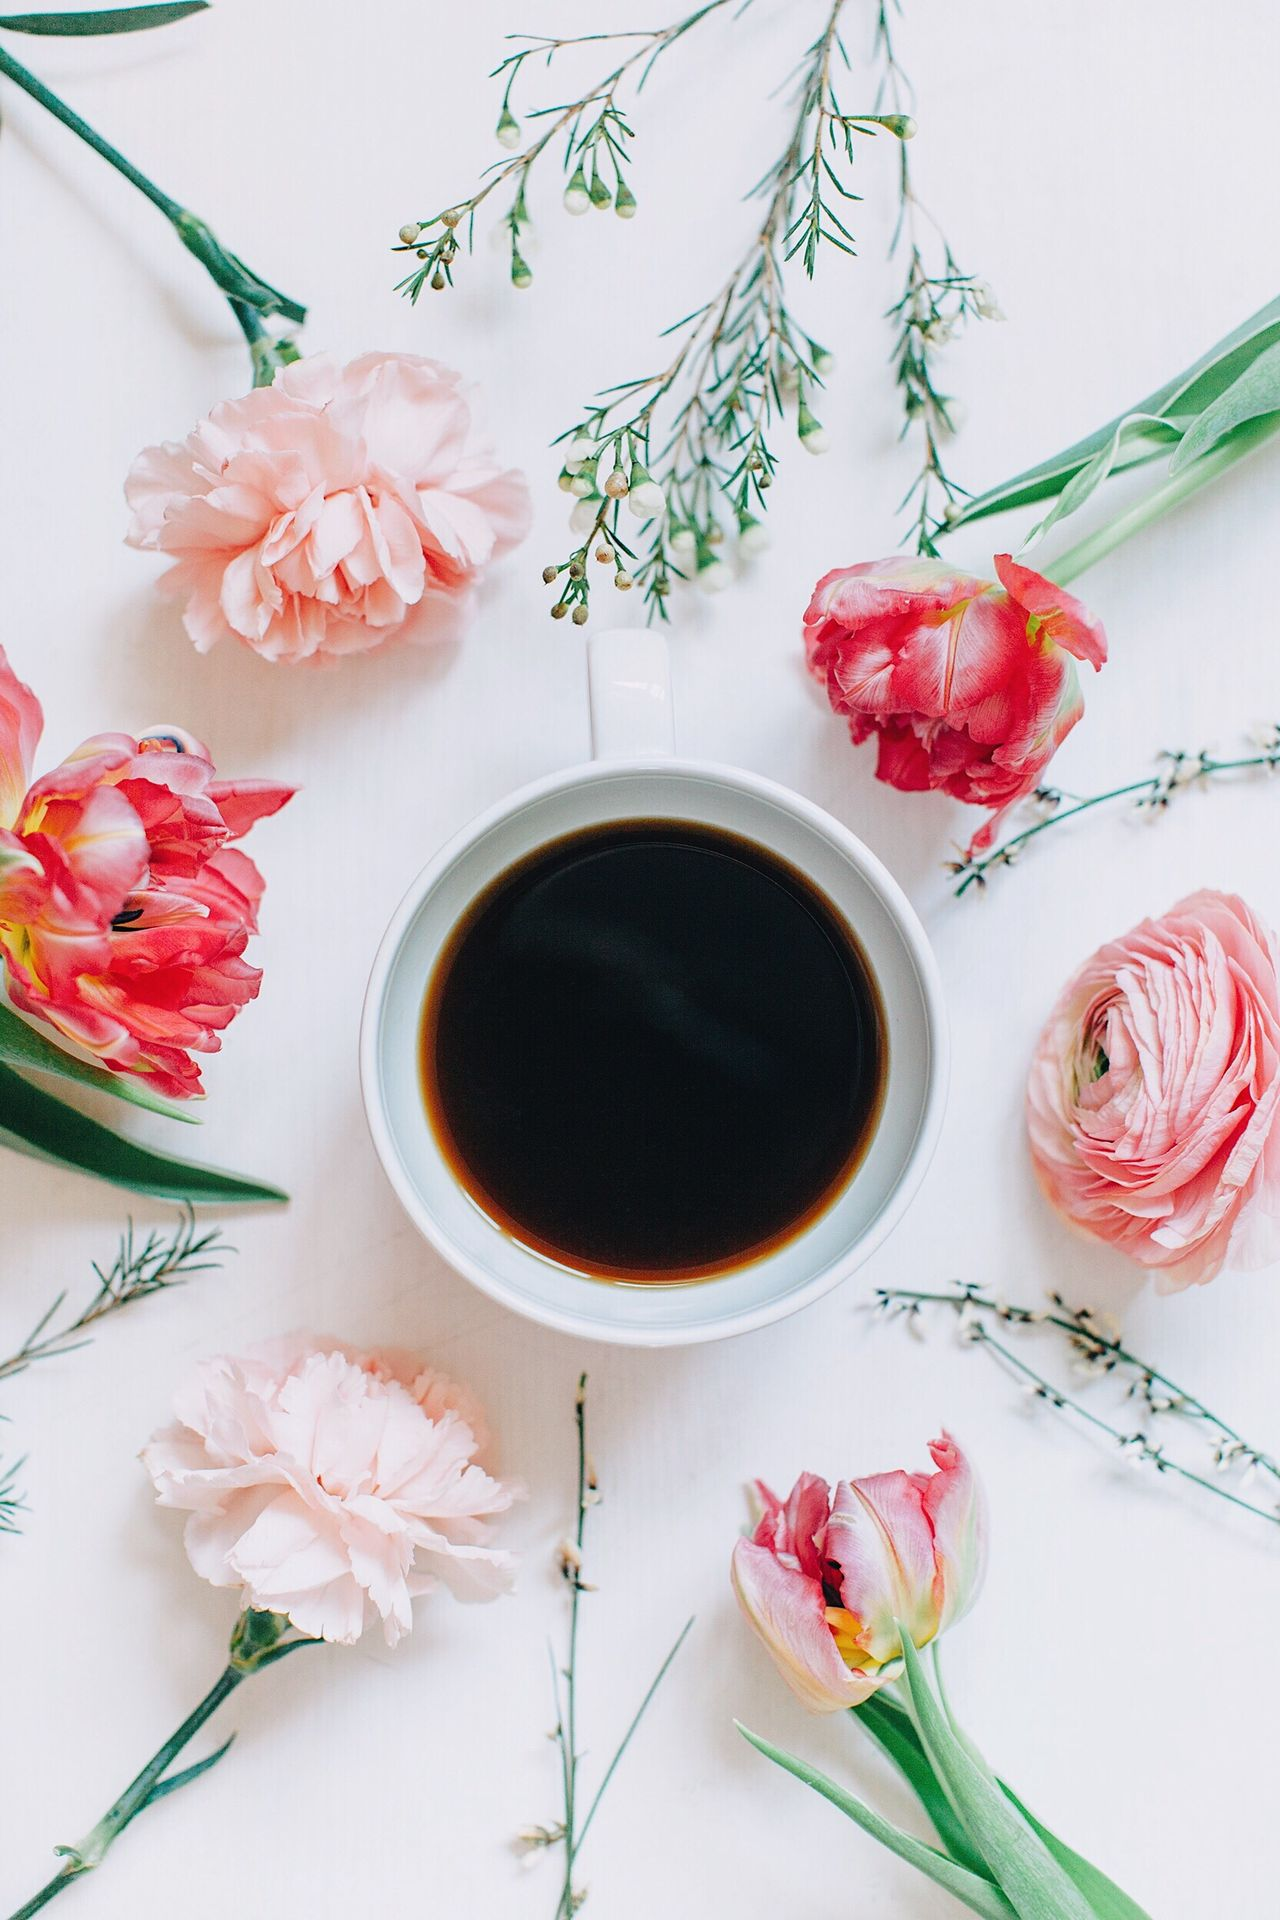 Directly above shot of flowers and coffee